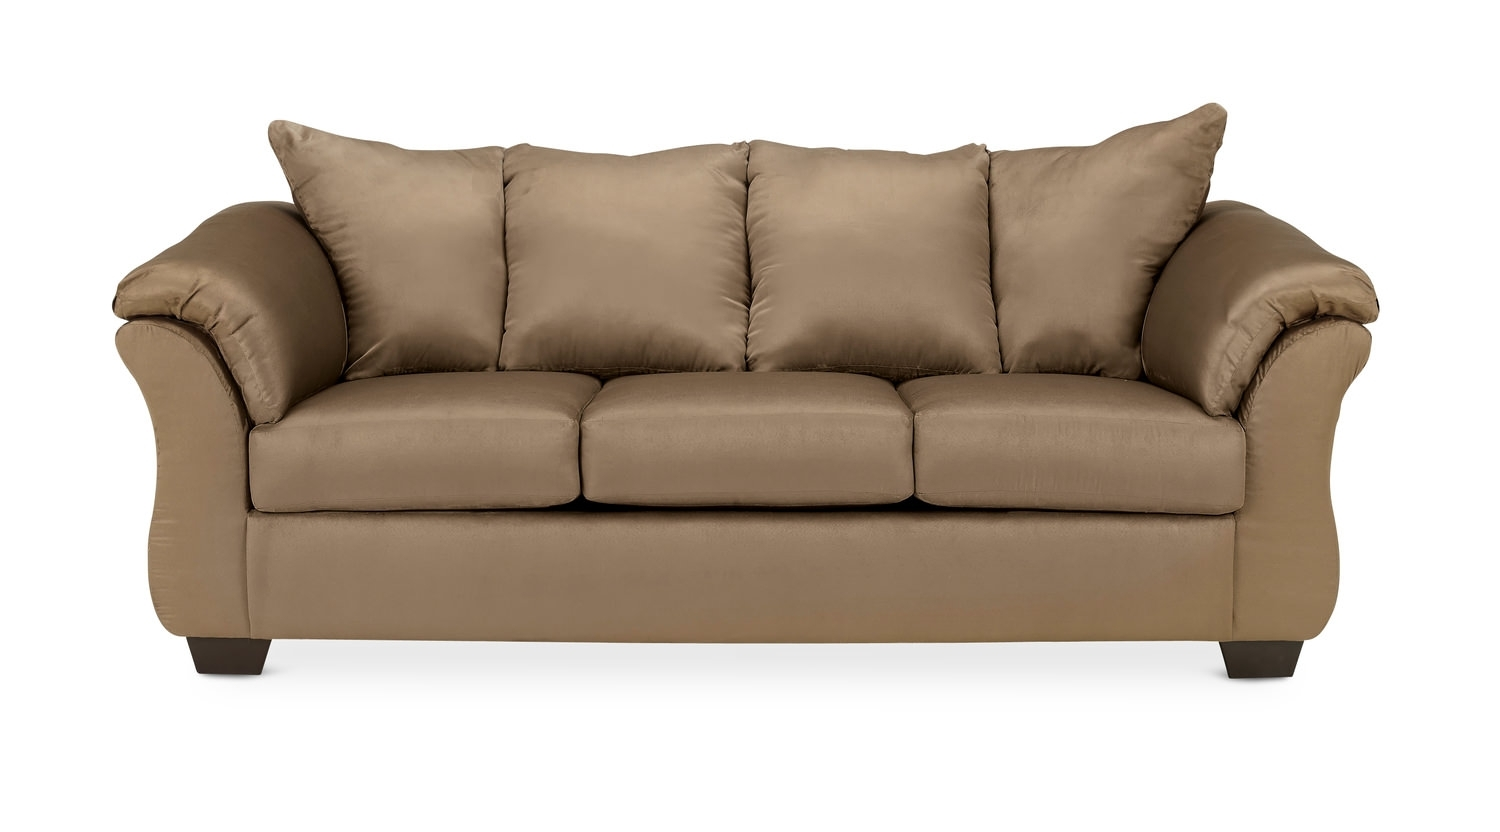 Almath Sofa | Dock86 Within Dock 86 Sectional Sofas (Image 1 of 10)